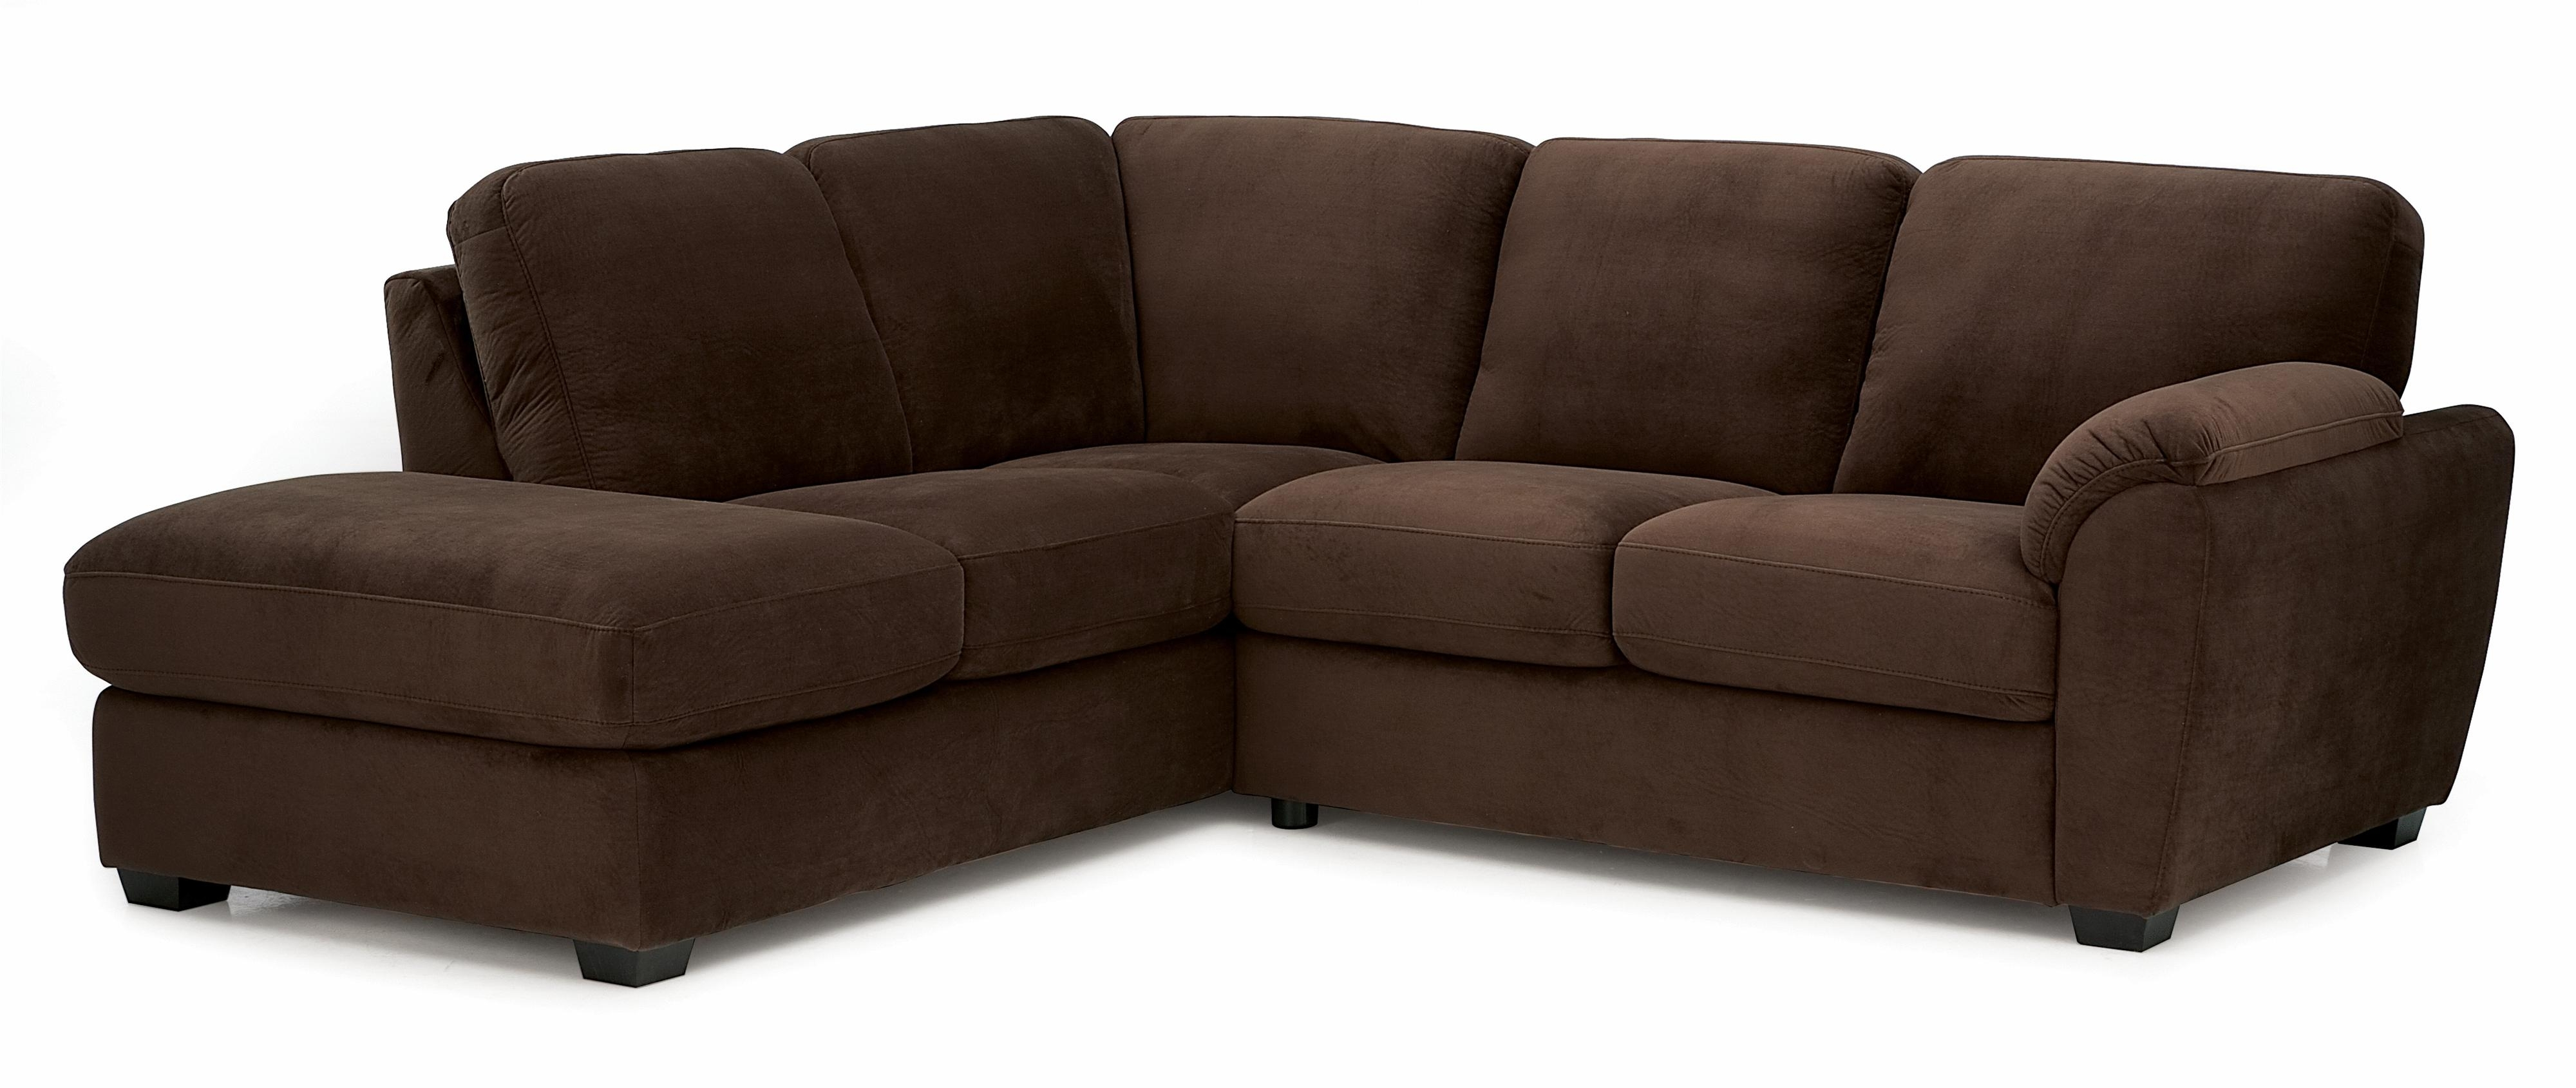 Lanza Two Piece Sectional Sofa With Rhf Chaisepalliser | Sofas for Sectional Sofas at Birmingham Al (Image 6 of 15)